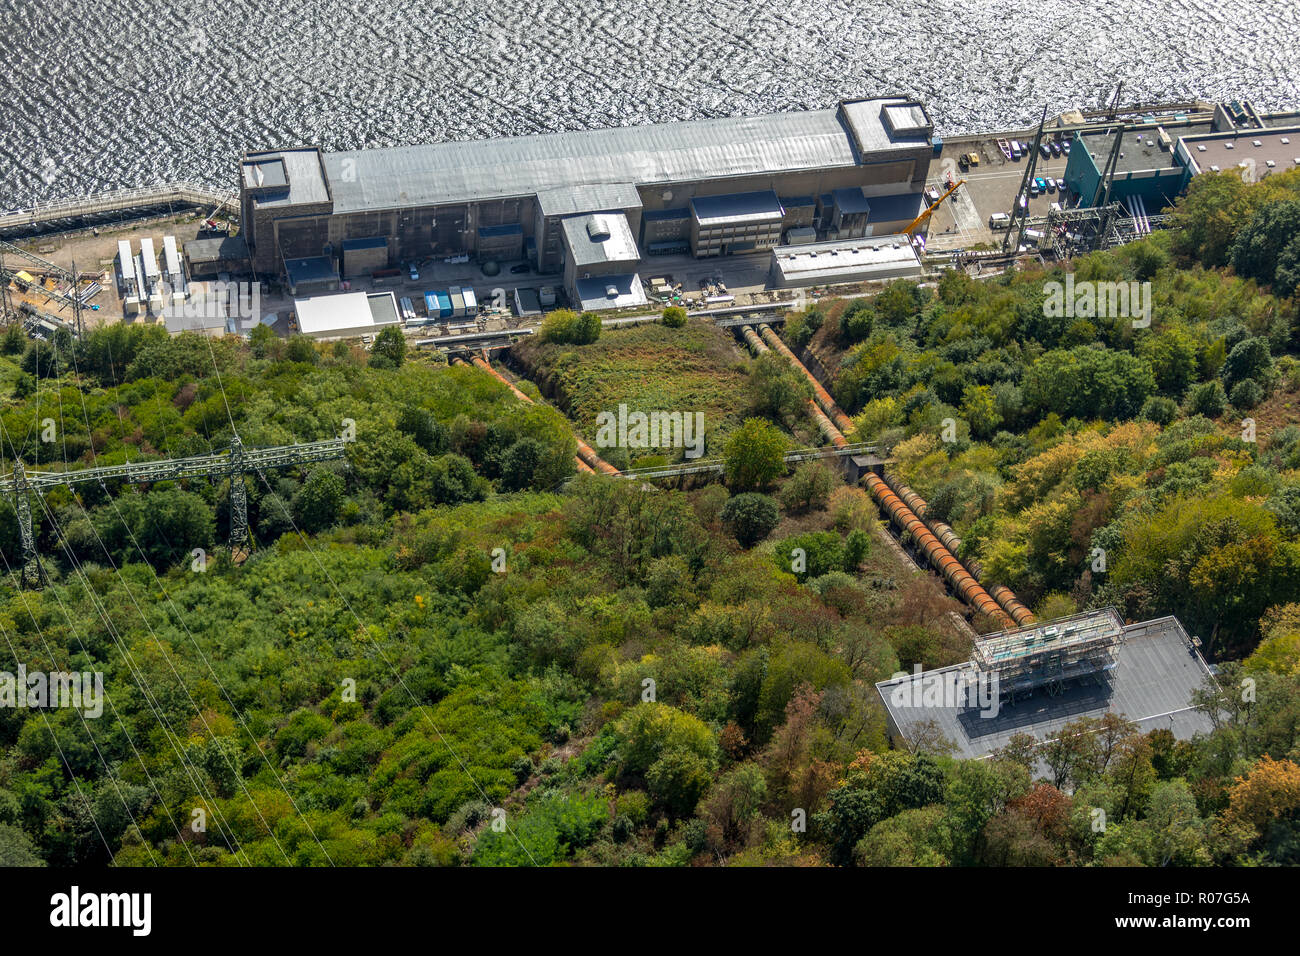 Aerial view, Hengsteysee, at the ship angle in Herdecke it goes on refurbishment, inclined lift between valve house and shore should be disabled, Herd - Stock Image